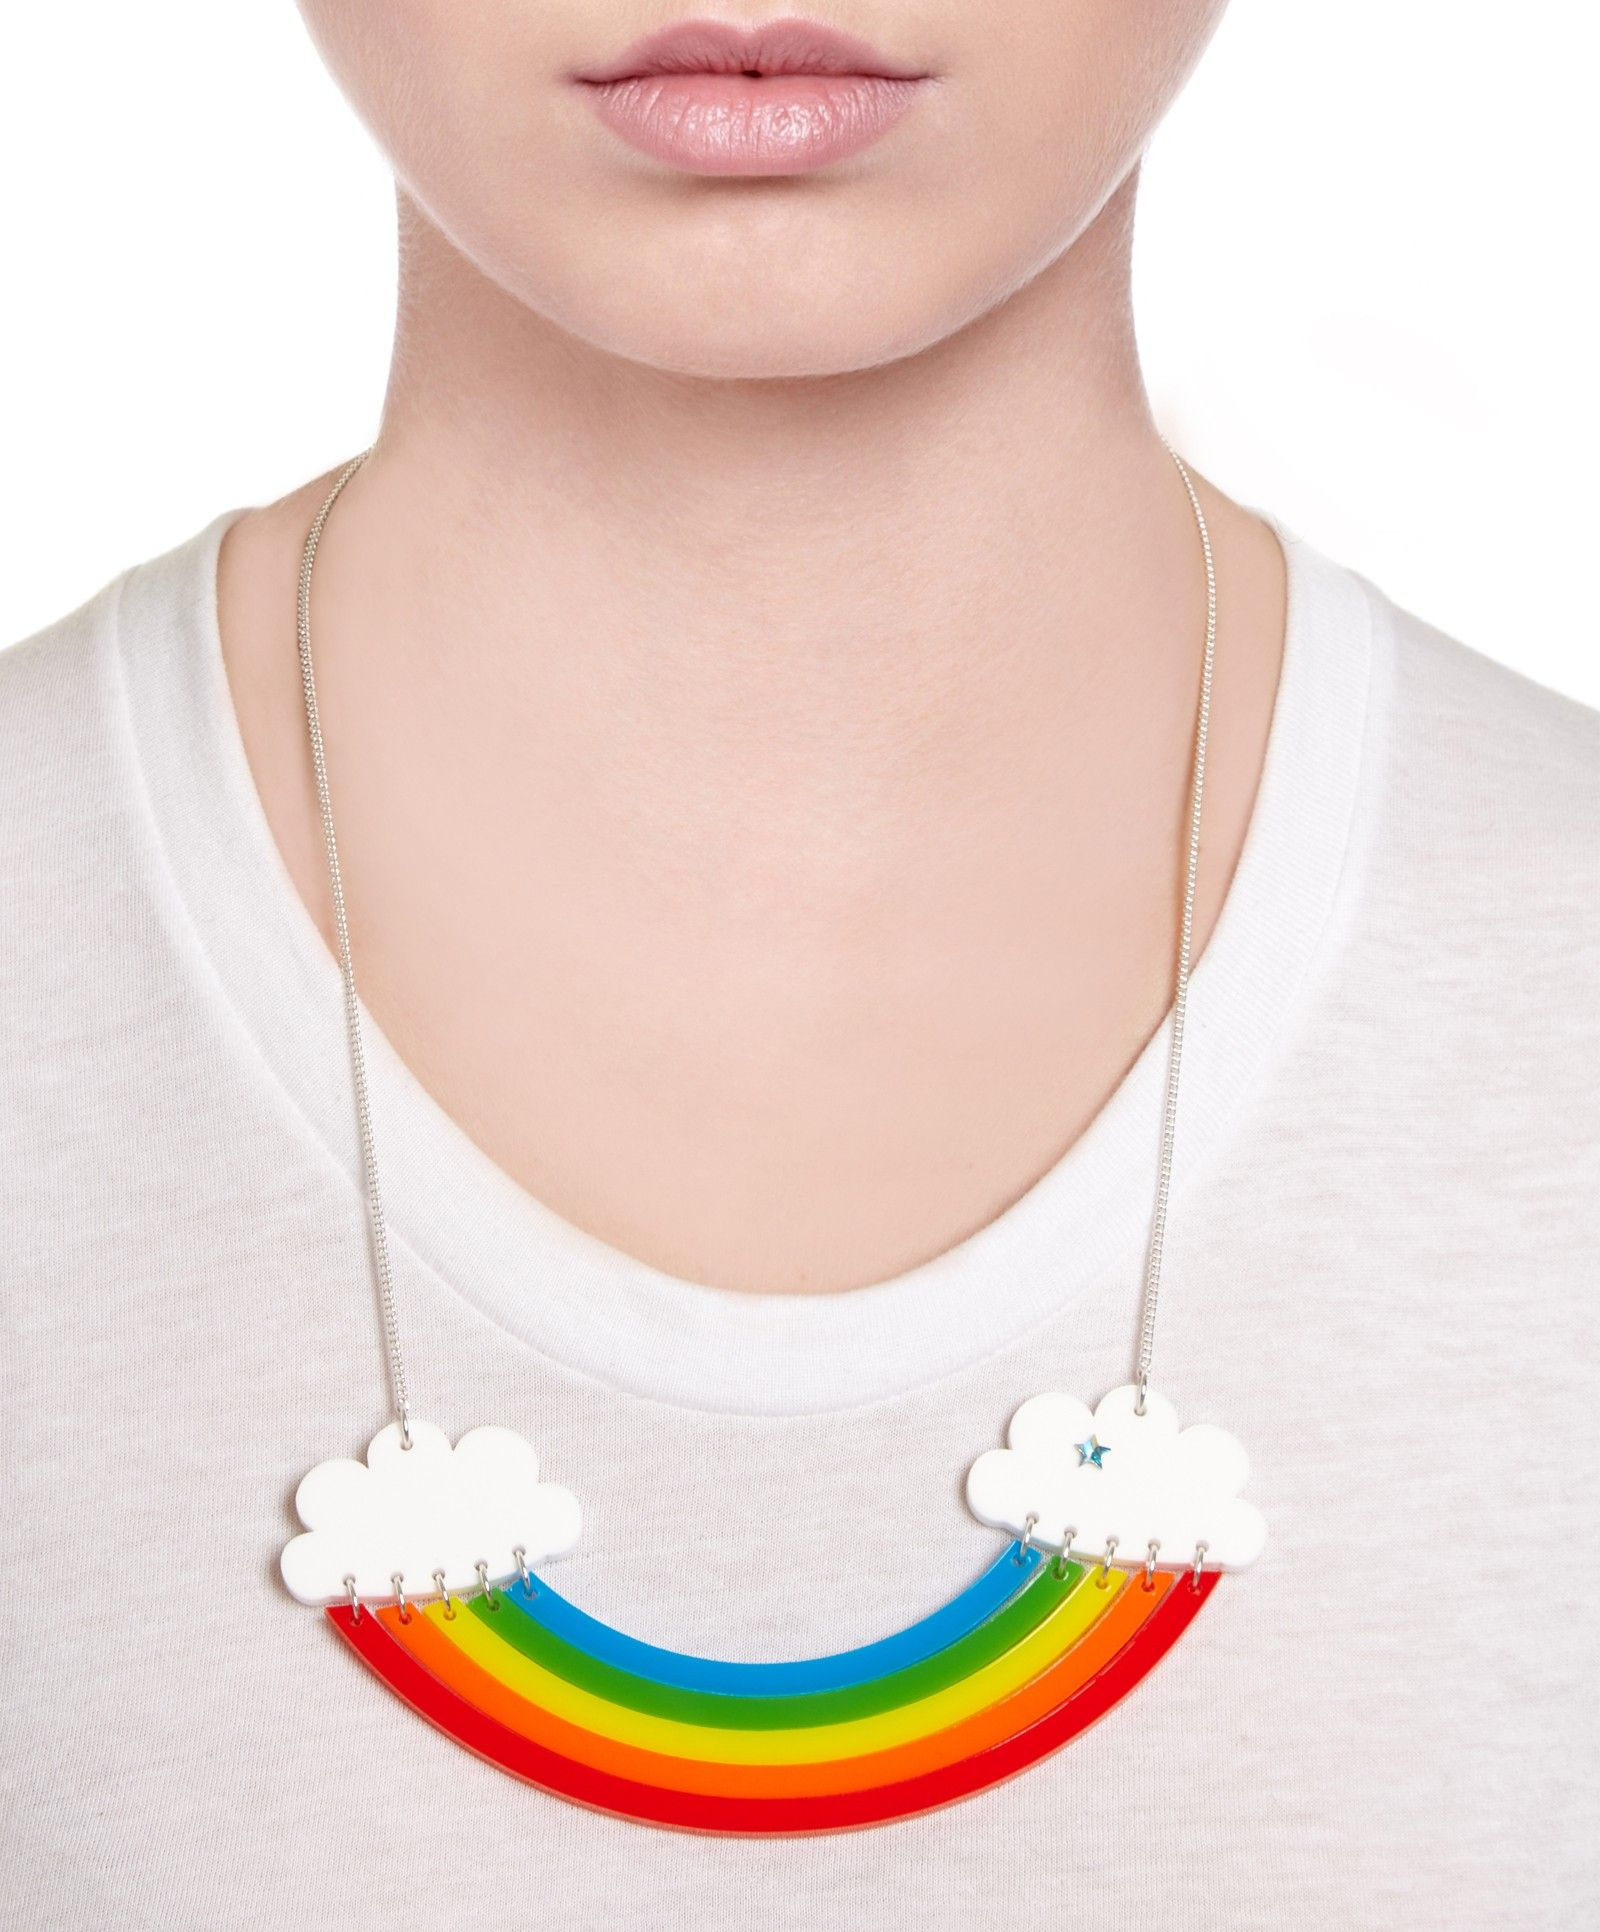 yg products necklace collection wg rainbow ef